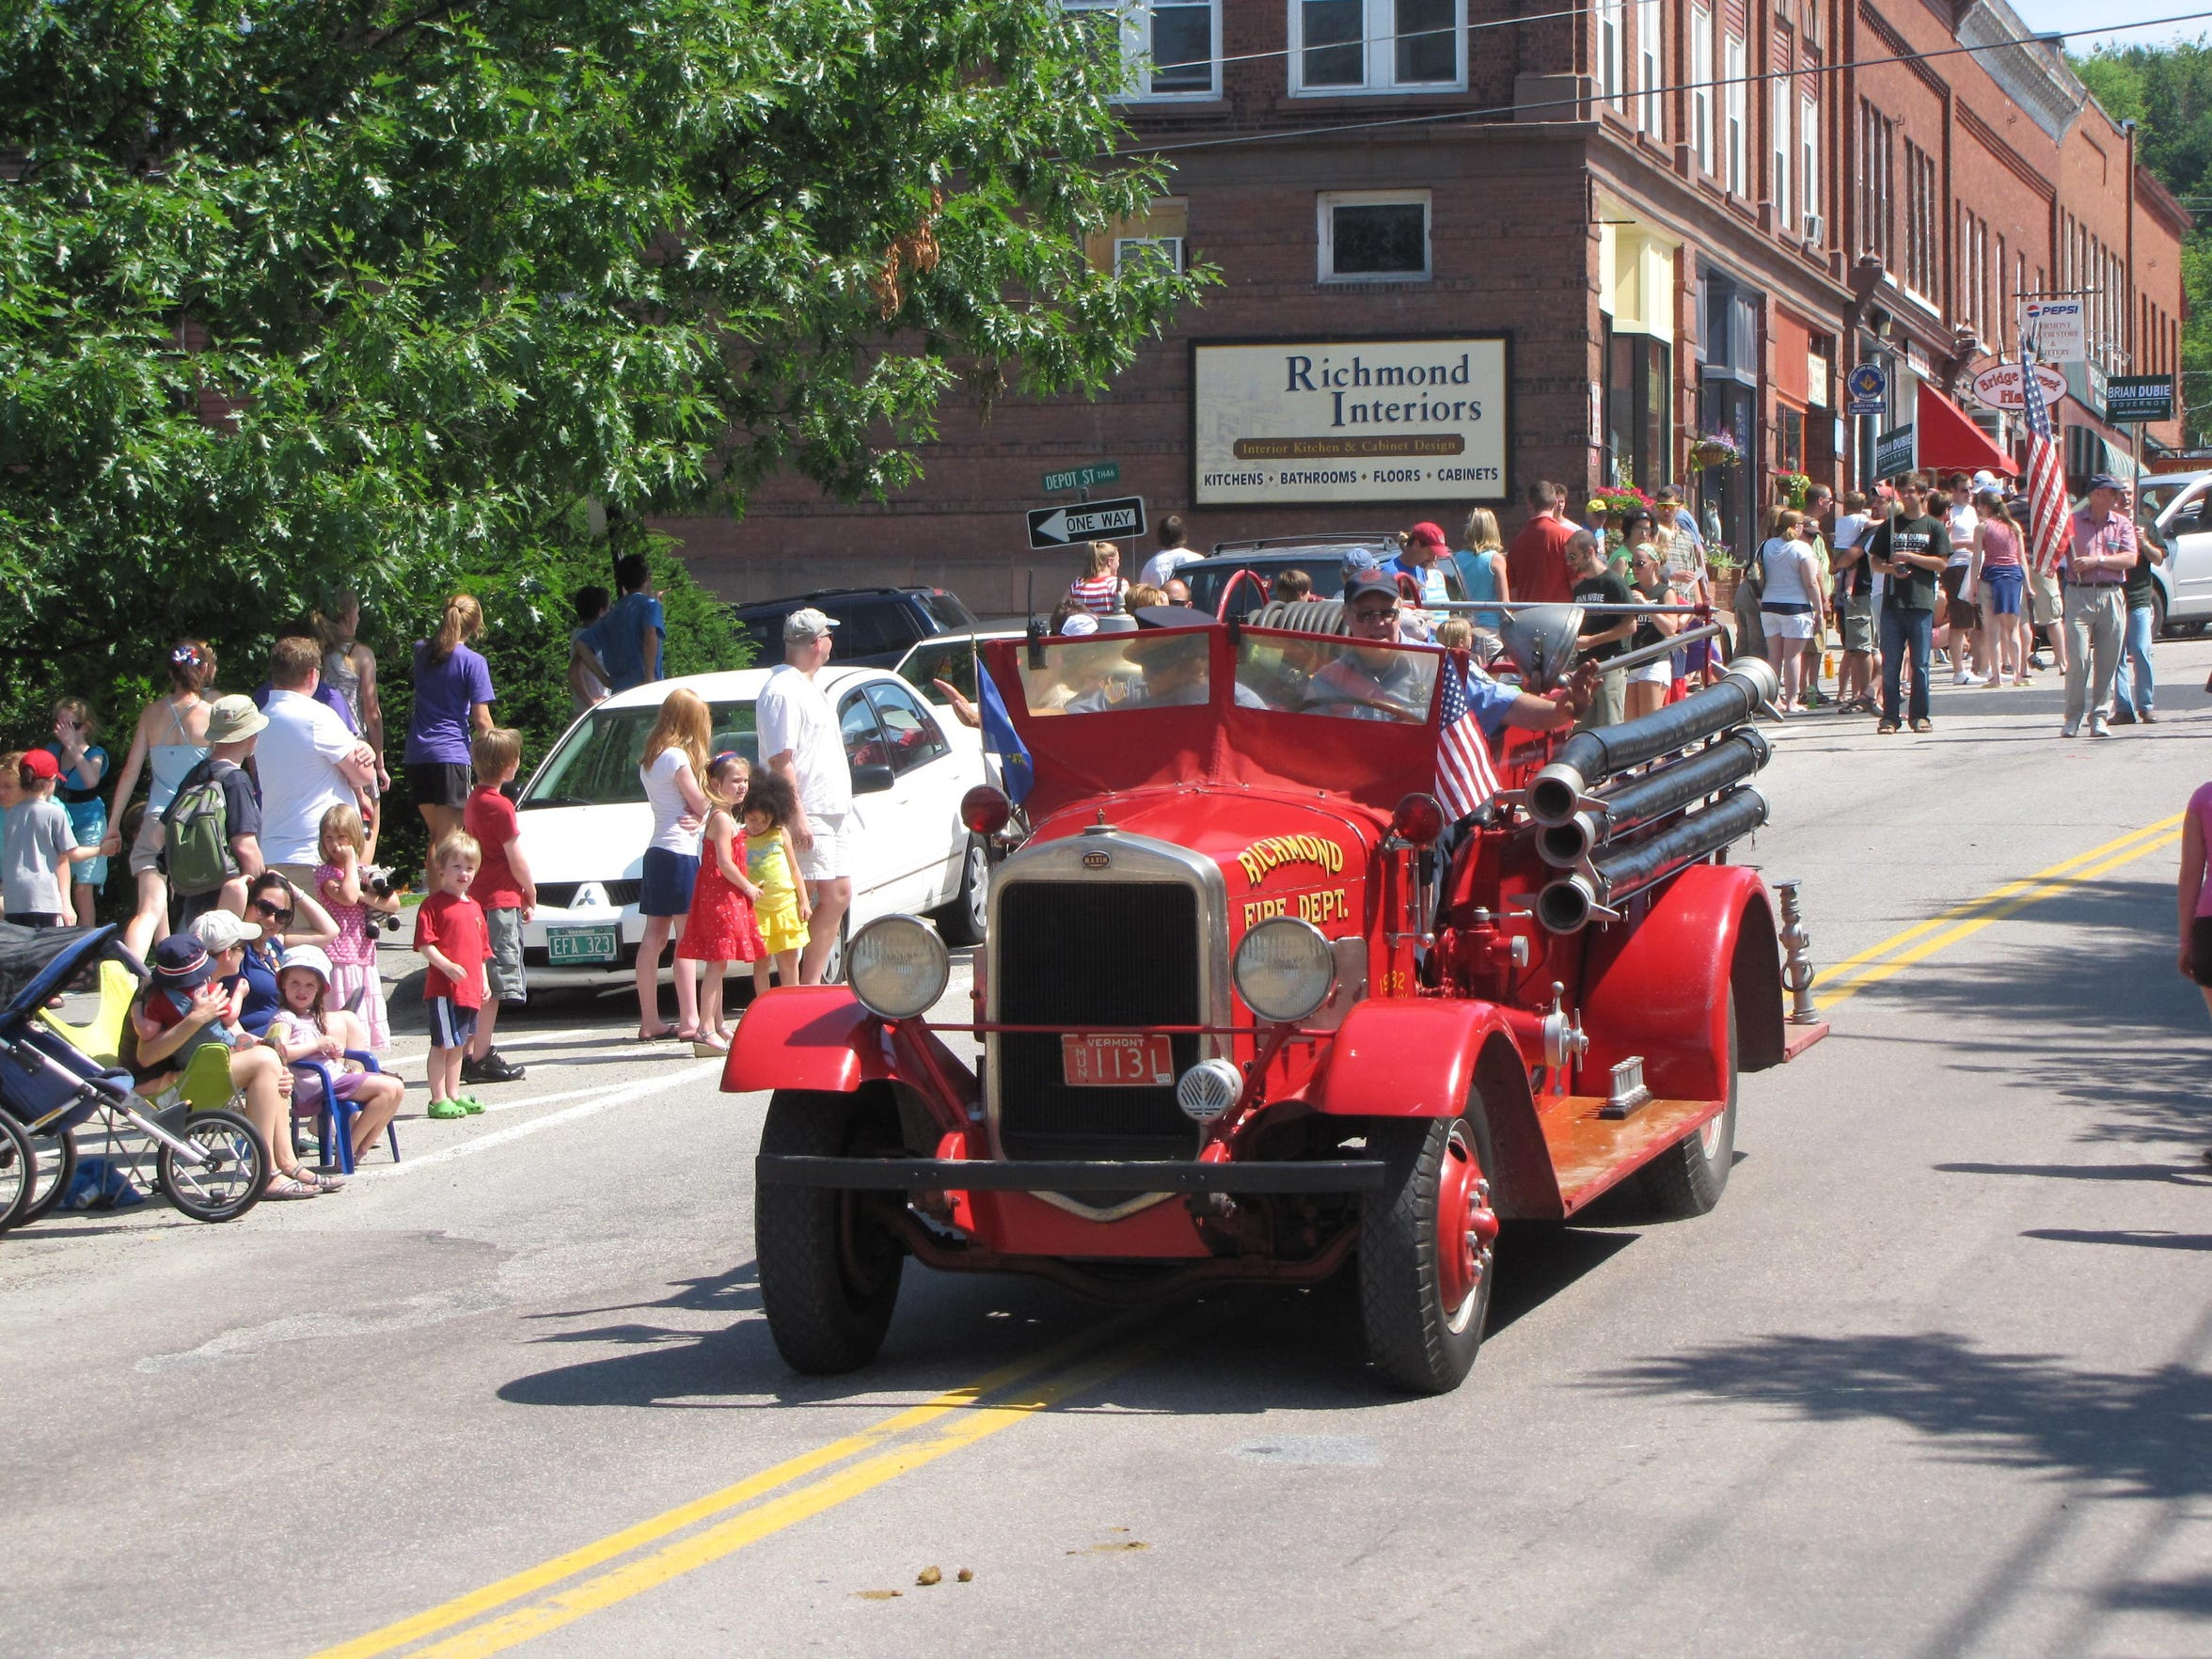 12. Richmond's 1932 fire truck in 2010 Fourth of July parade